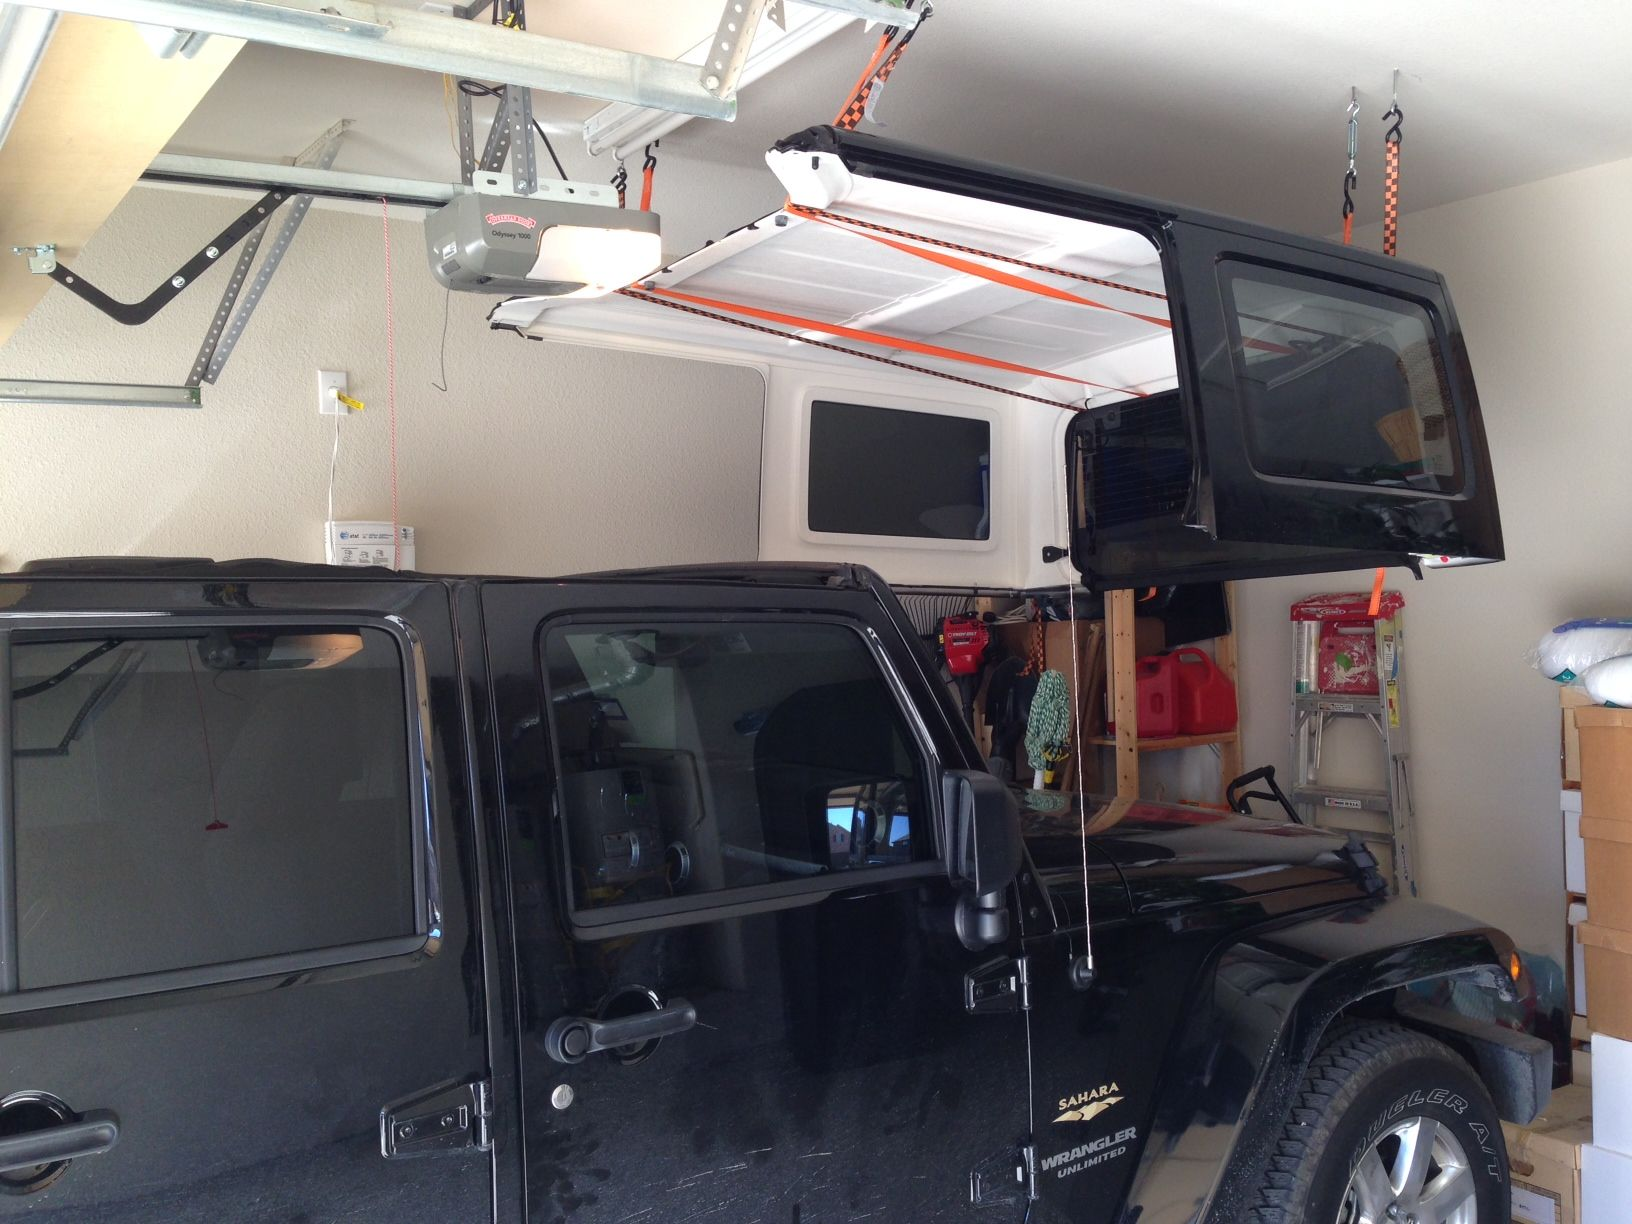 Cheap and easy hard top hoist jkowners com jeep wrangler jk forum